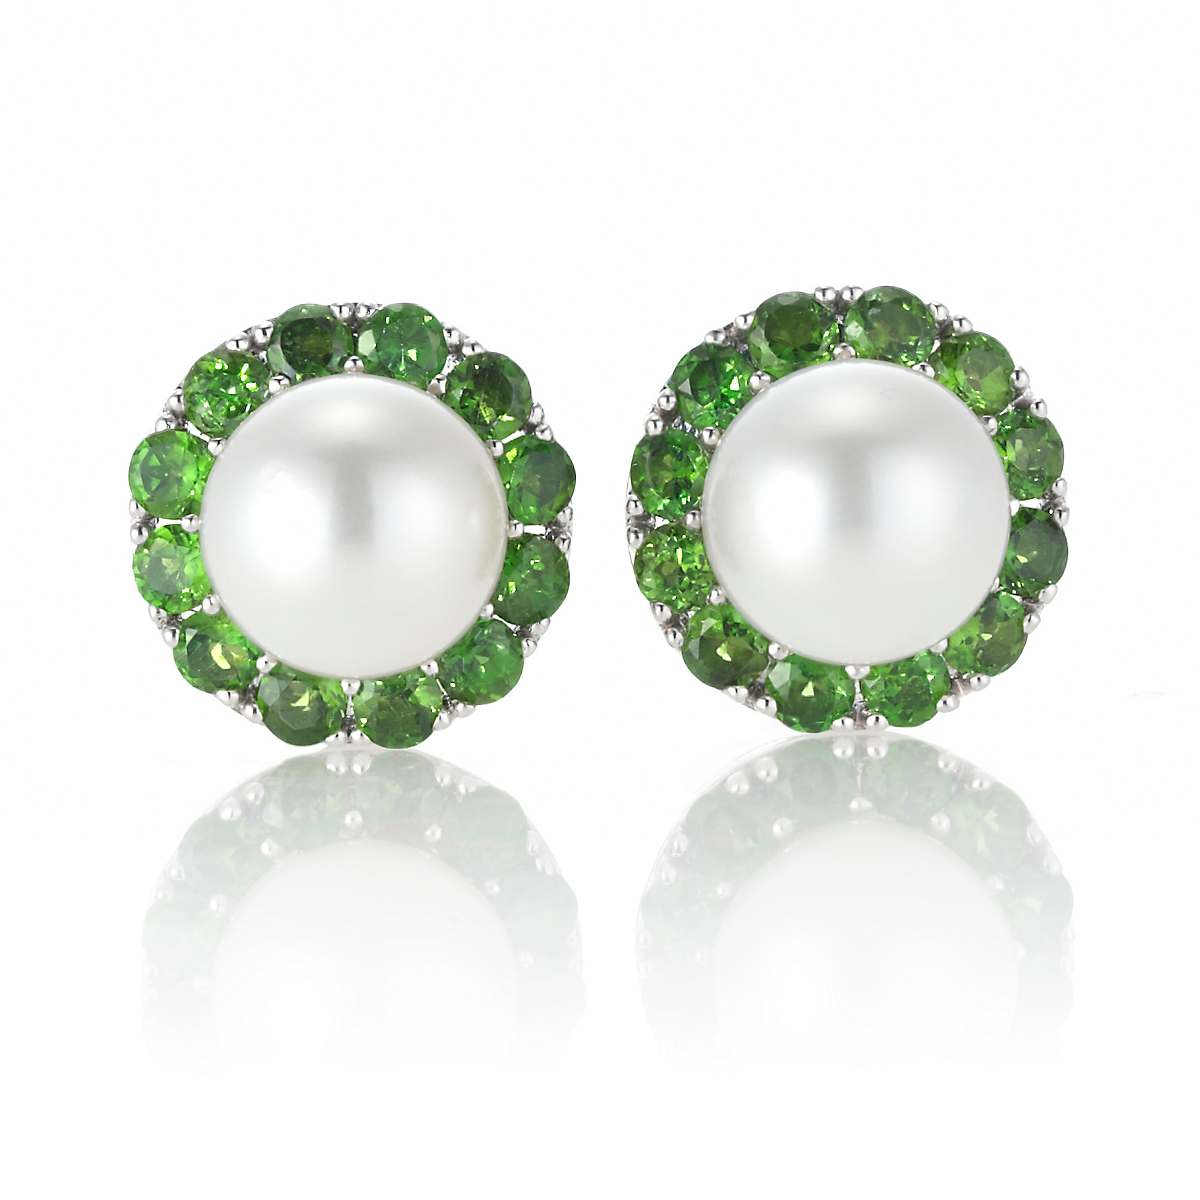 Gump's Chrome Diopside & Pearl Earrings